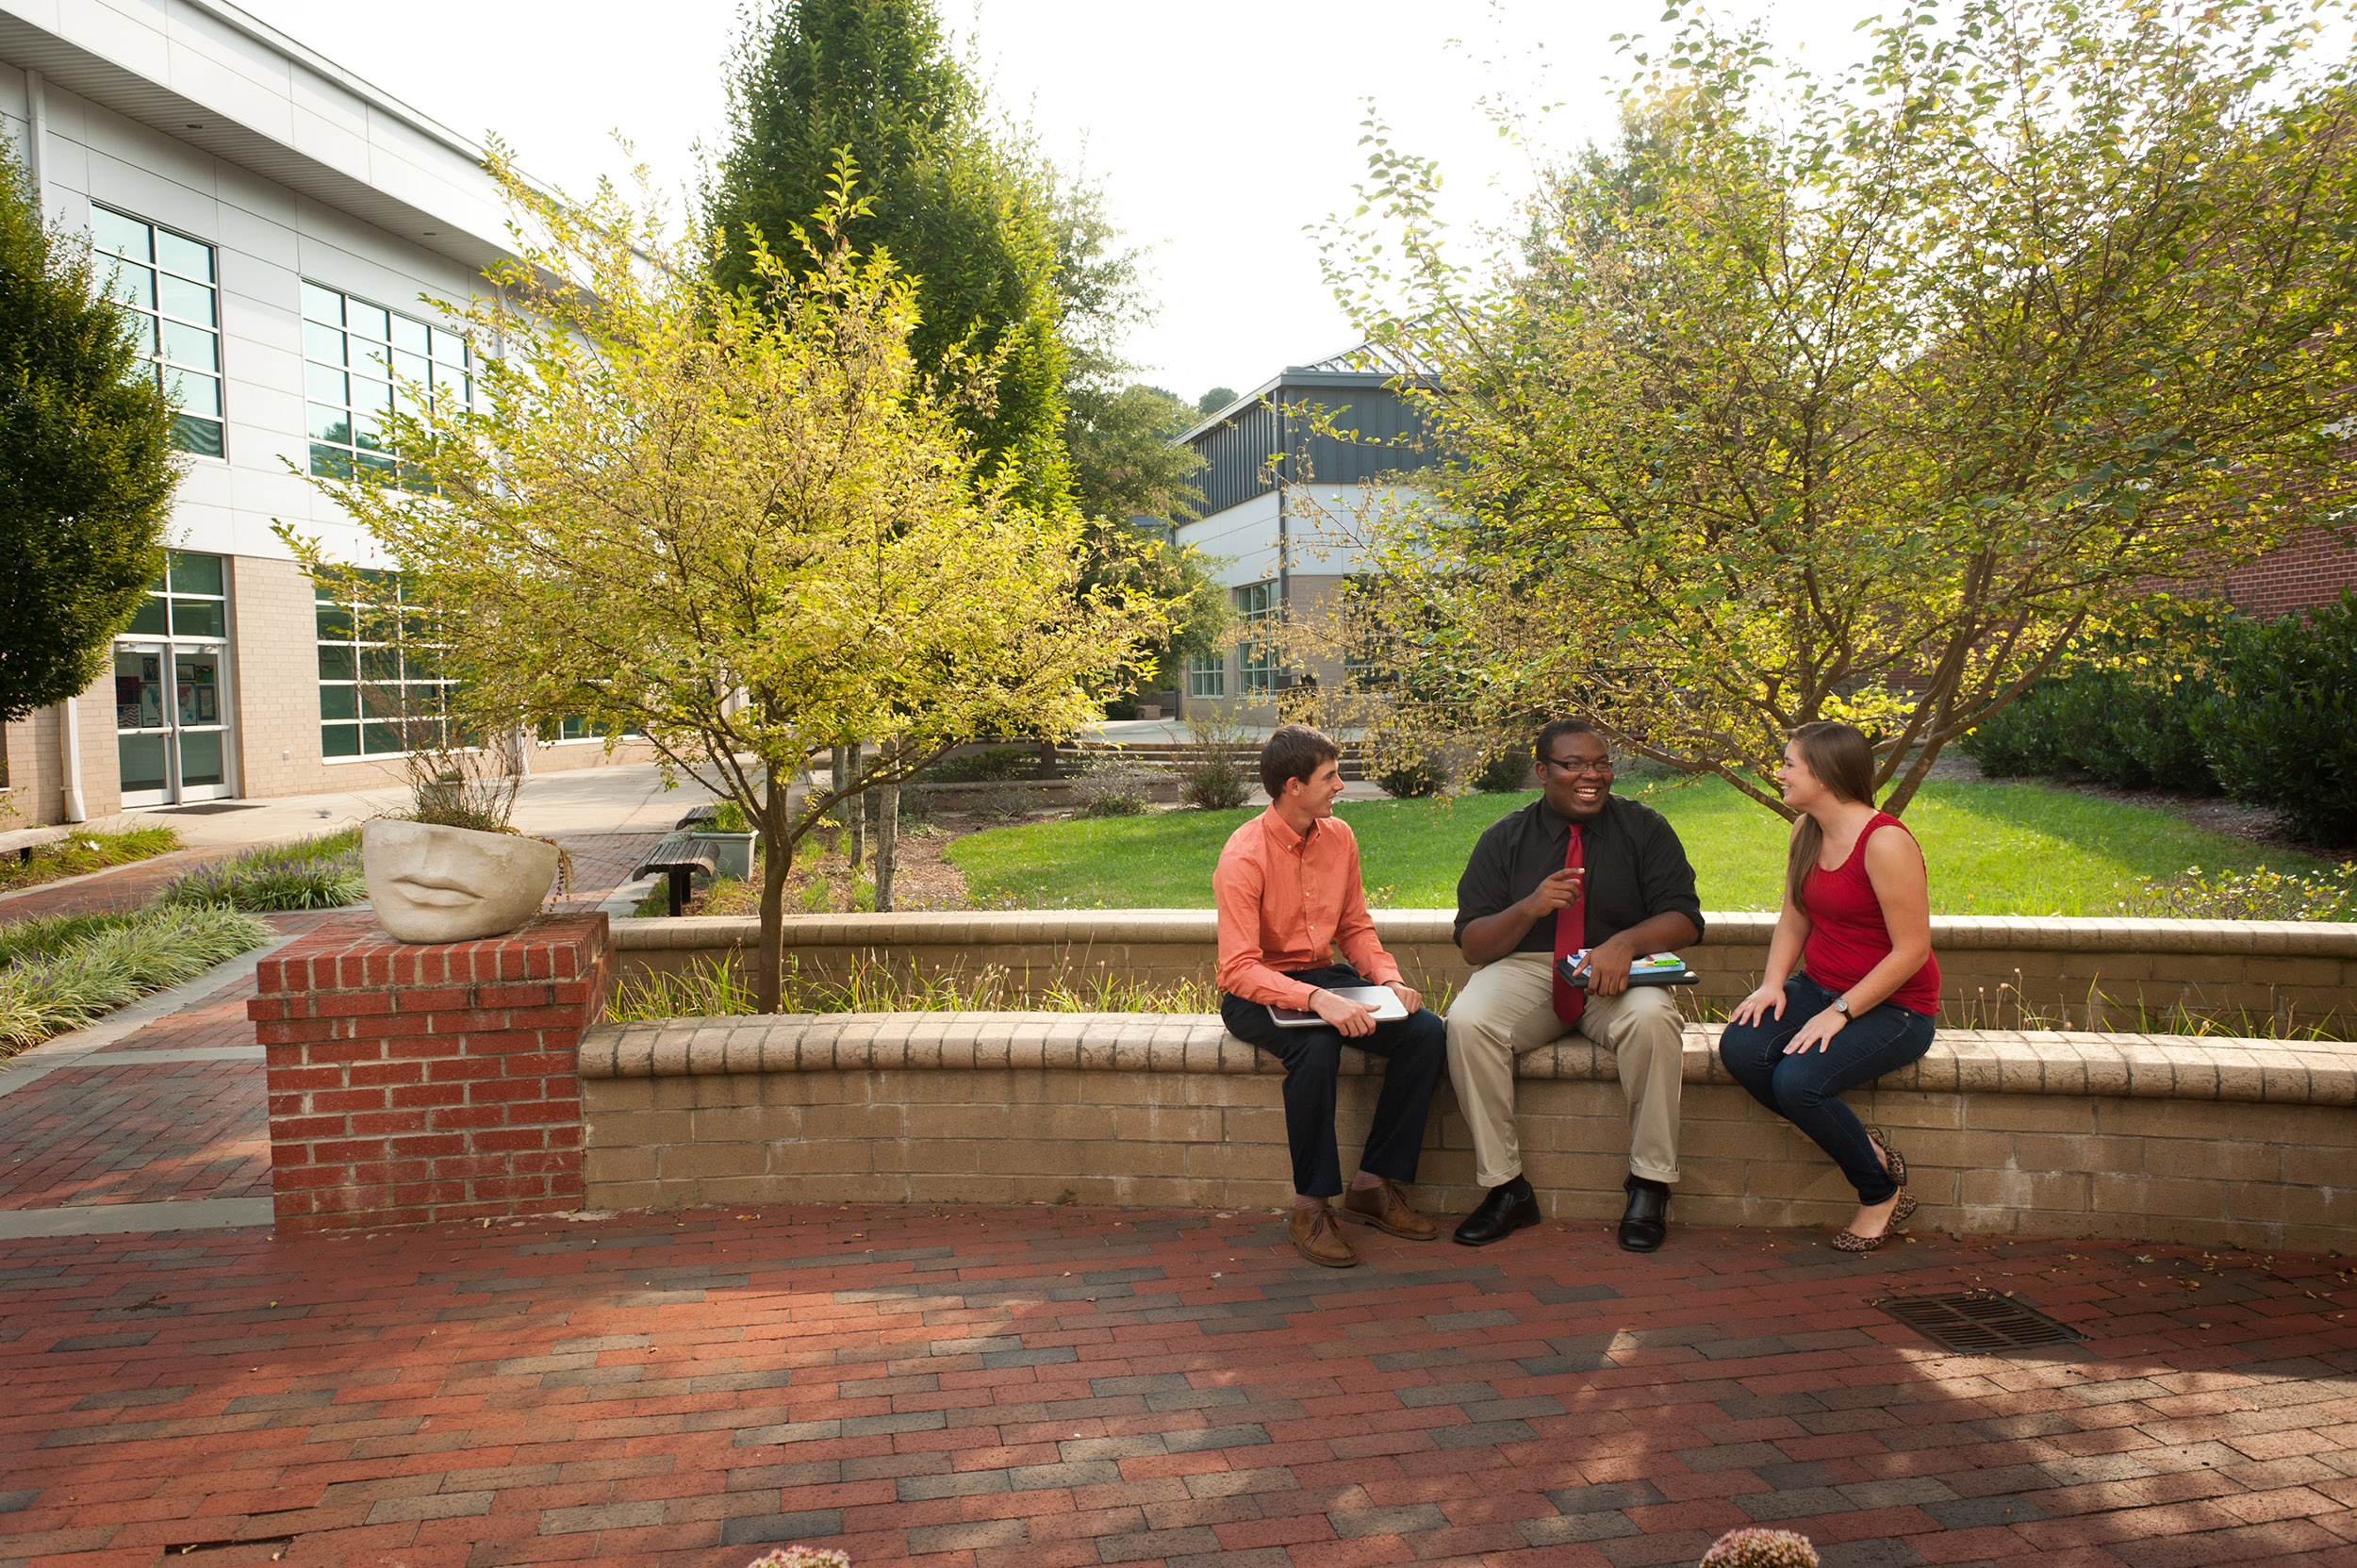 3 members of the campus community enjoy each others' company. Informal social spaces are key to fostering a vibrant campus!